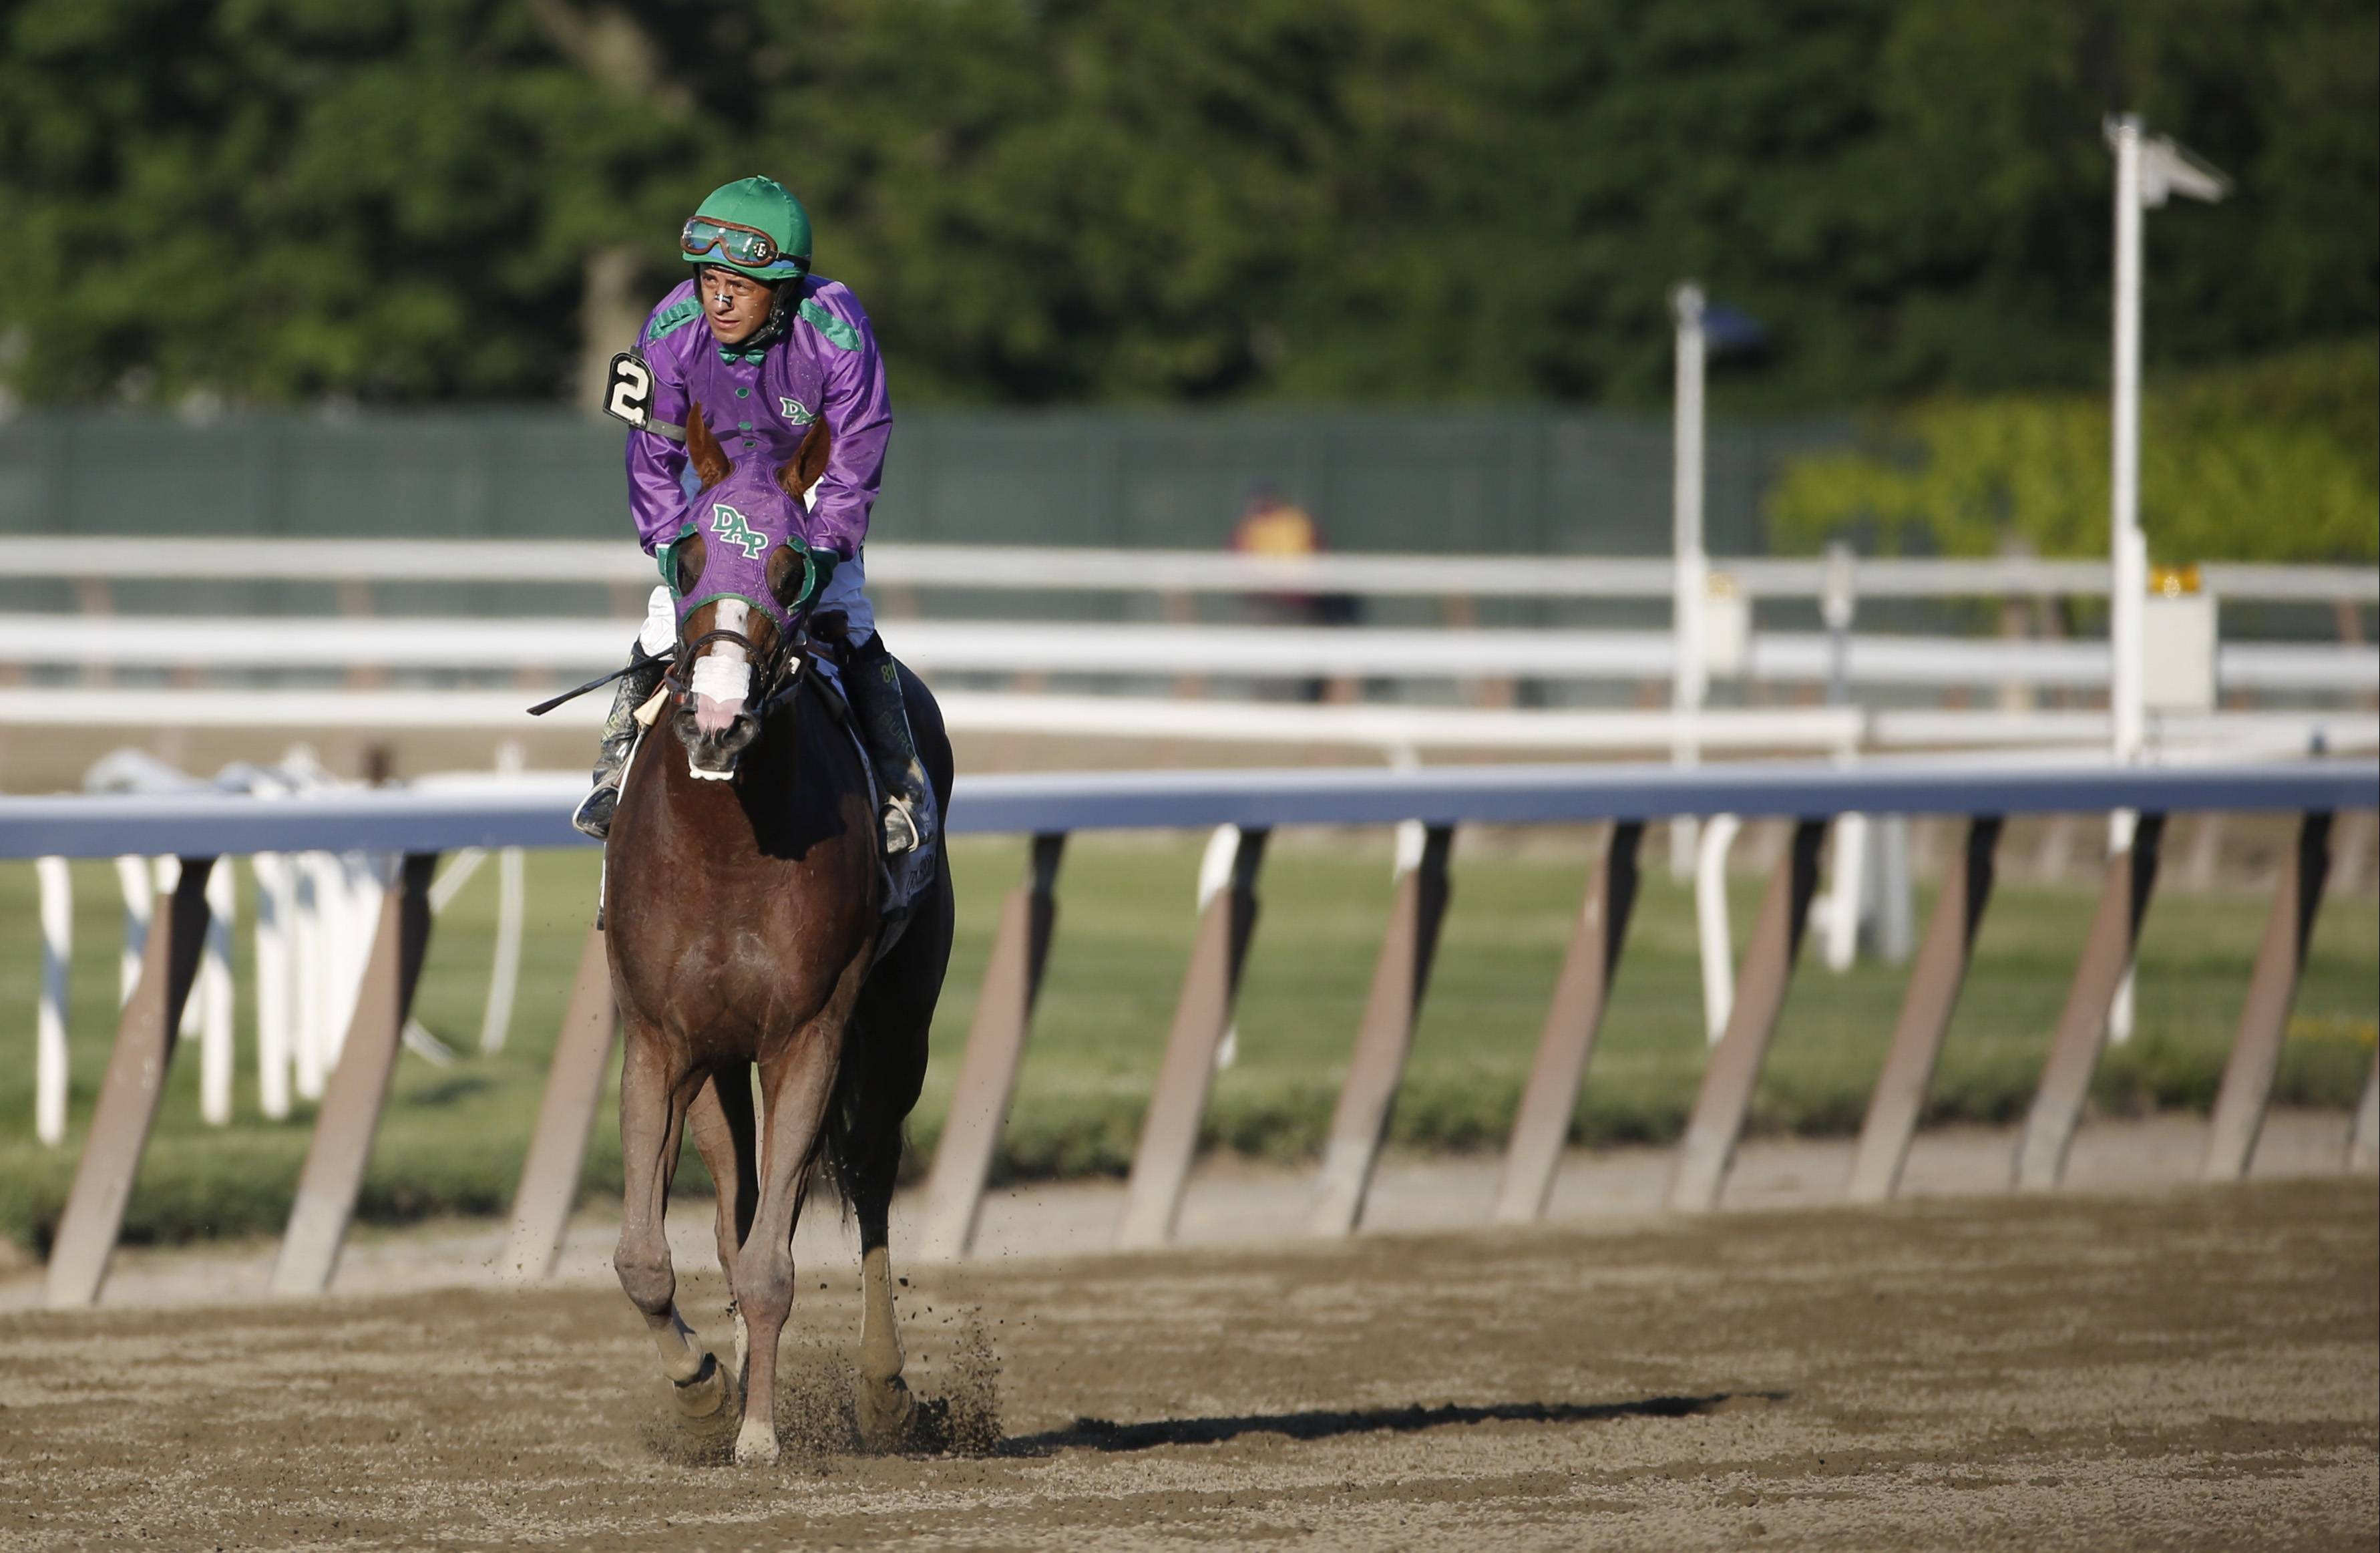 After finishing fourth in the Belmont Stakes, jockey Victor Espinoza cools down California Chrome. Mike North says there should be a match race in two months with California Chrome and Tonalist.